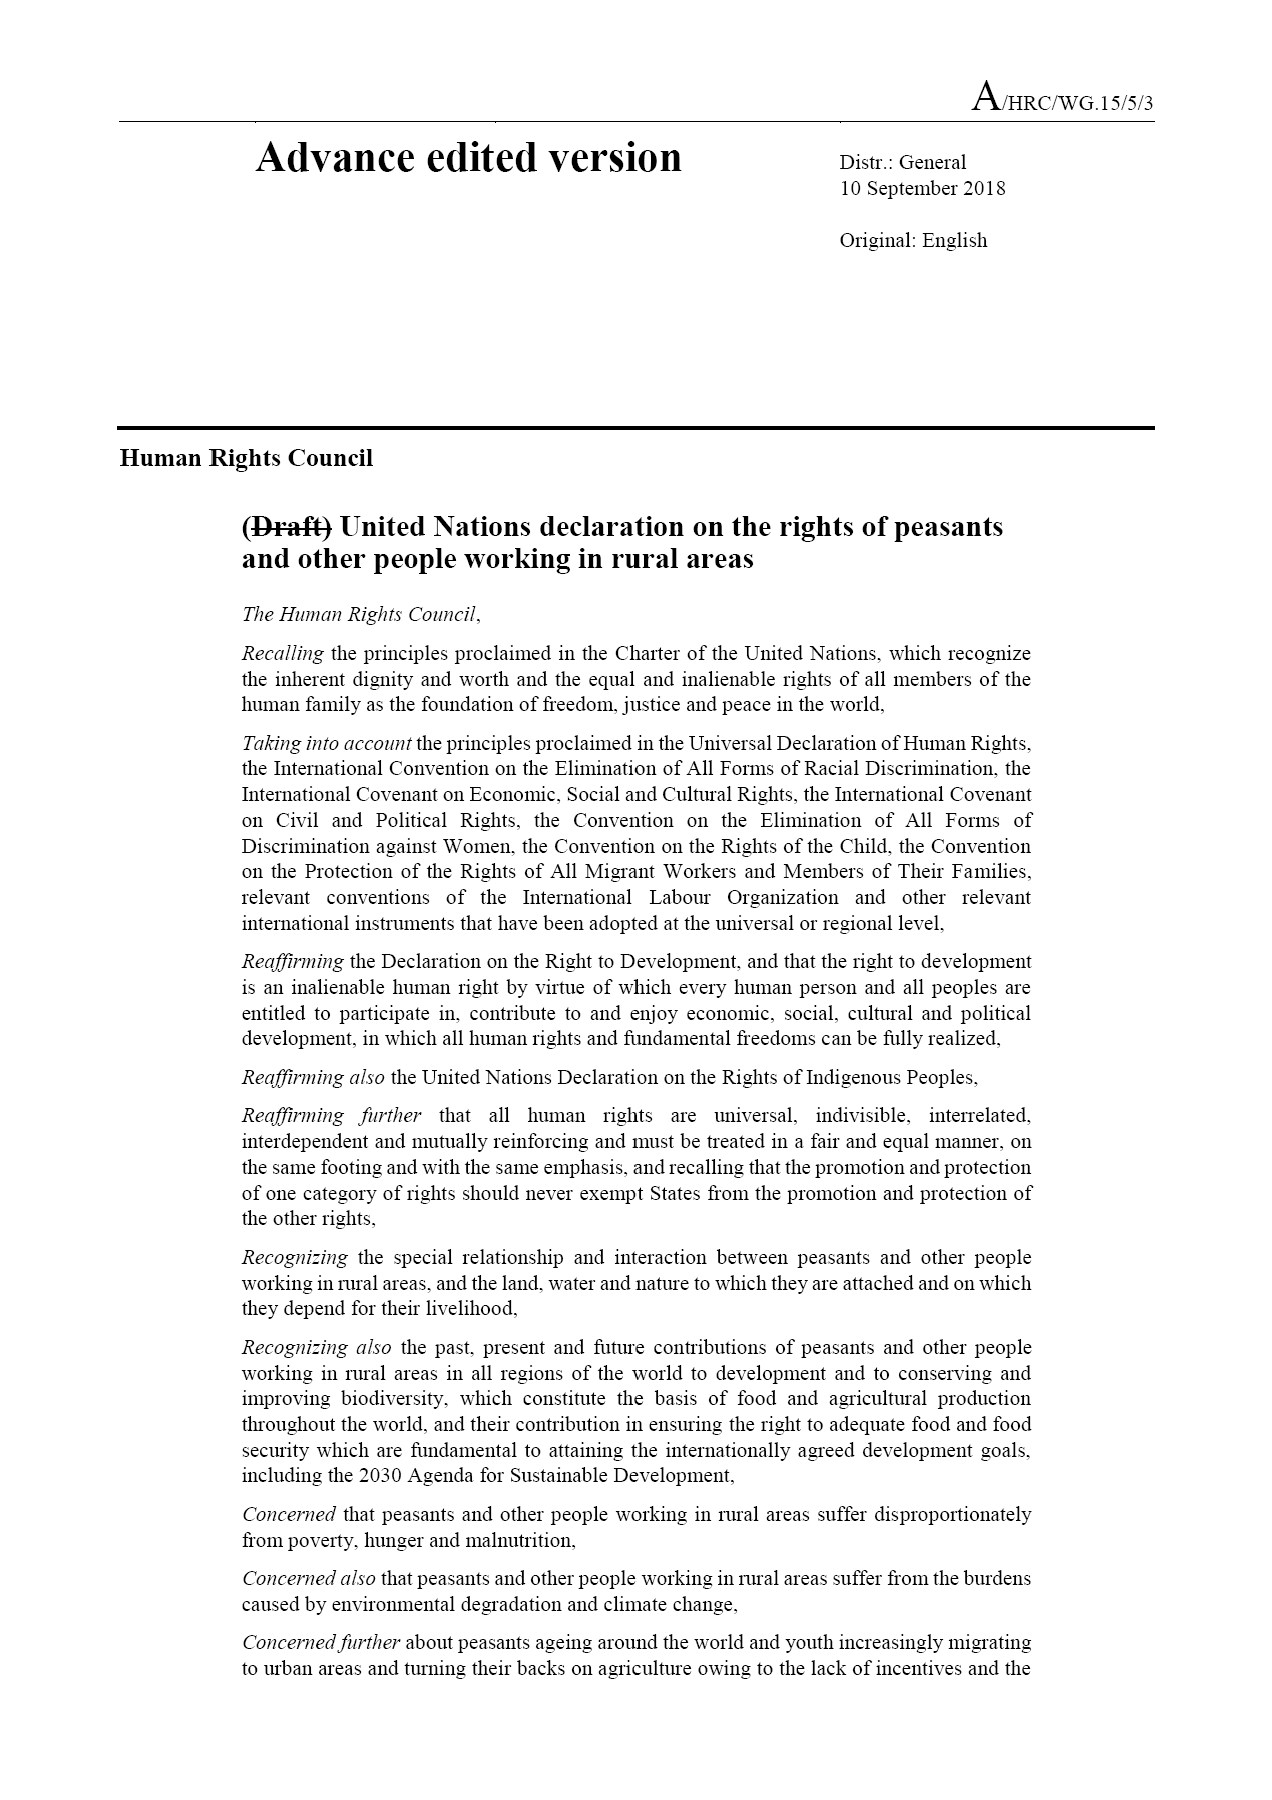 United Nations declaration on the rights of peasants and other people working in rural areas